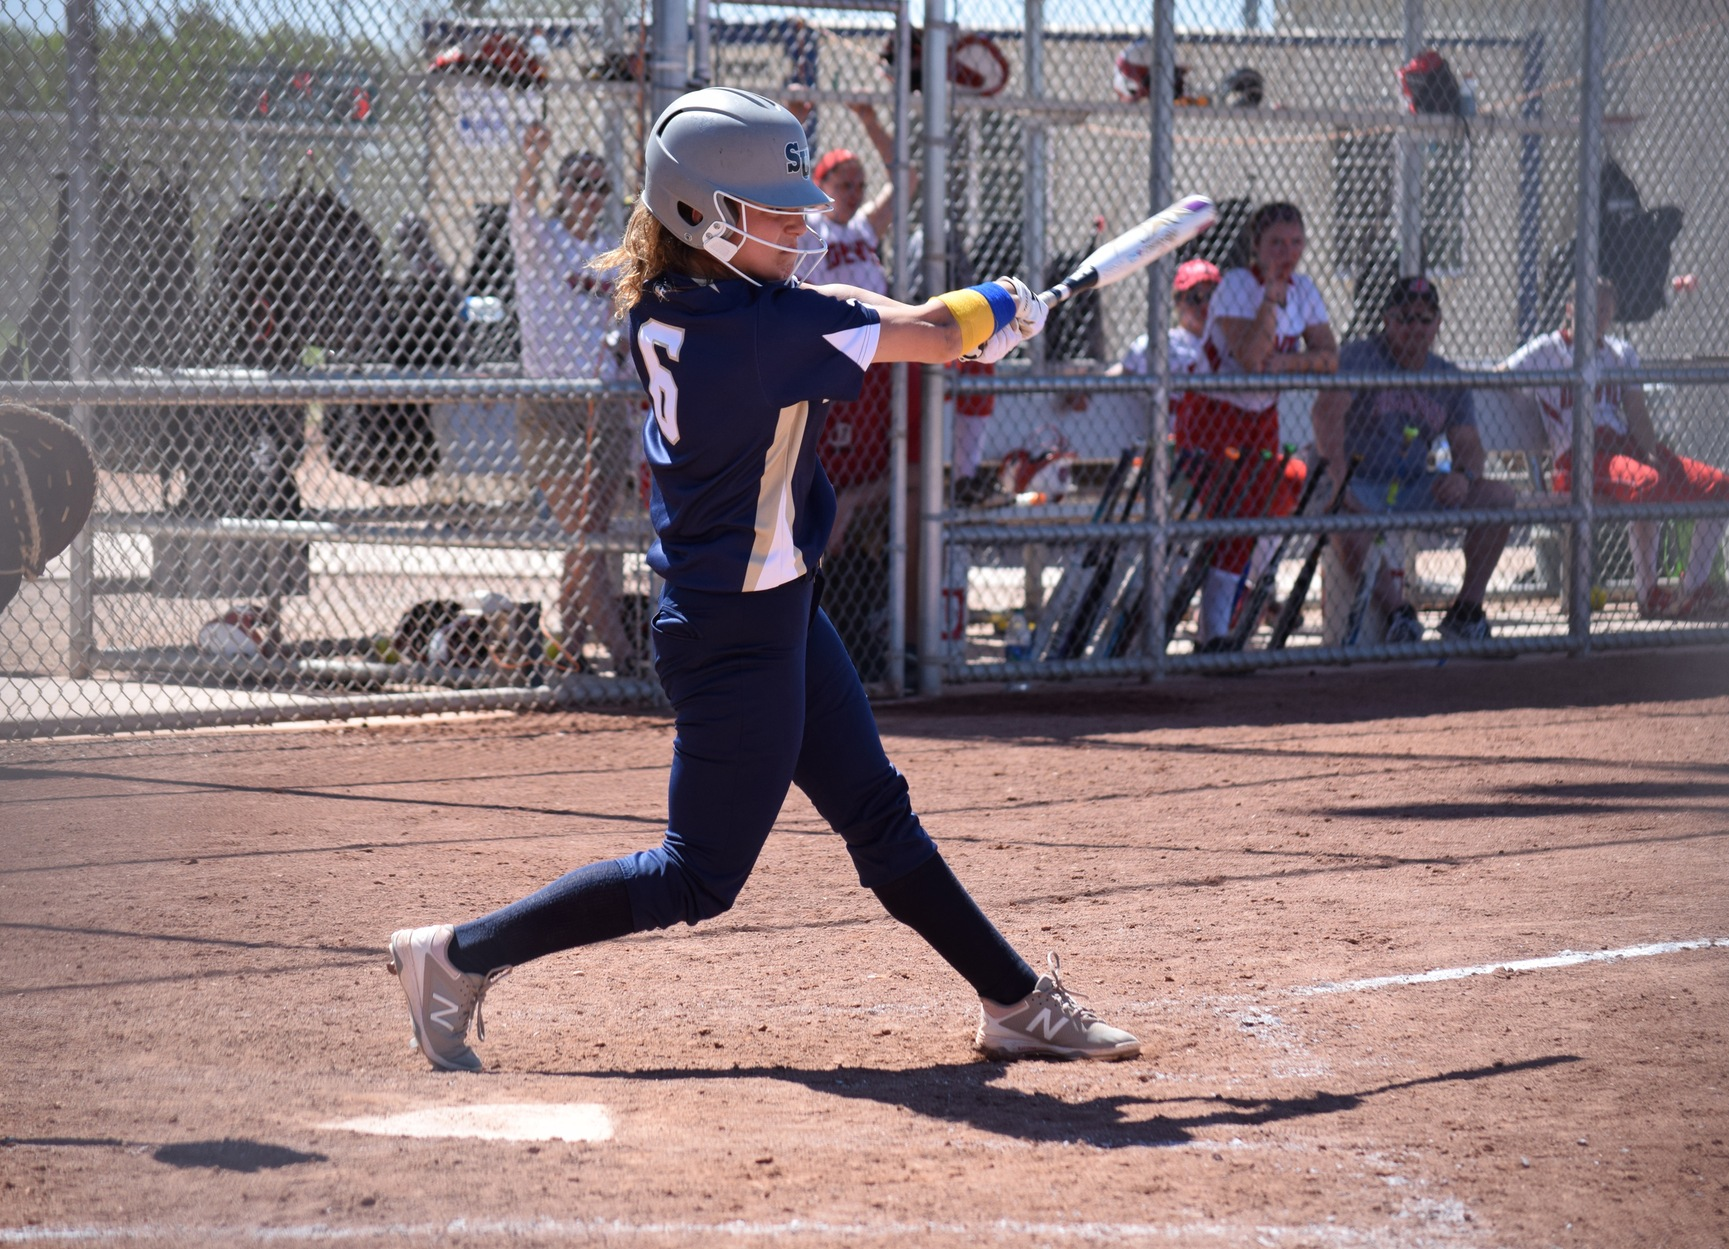 Flint's Walk-Off Propels Softball Over Curry in Game 2